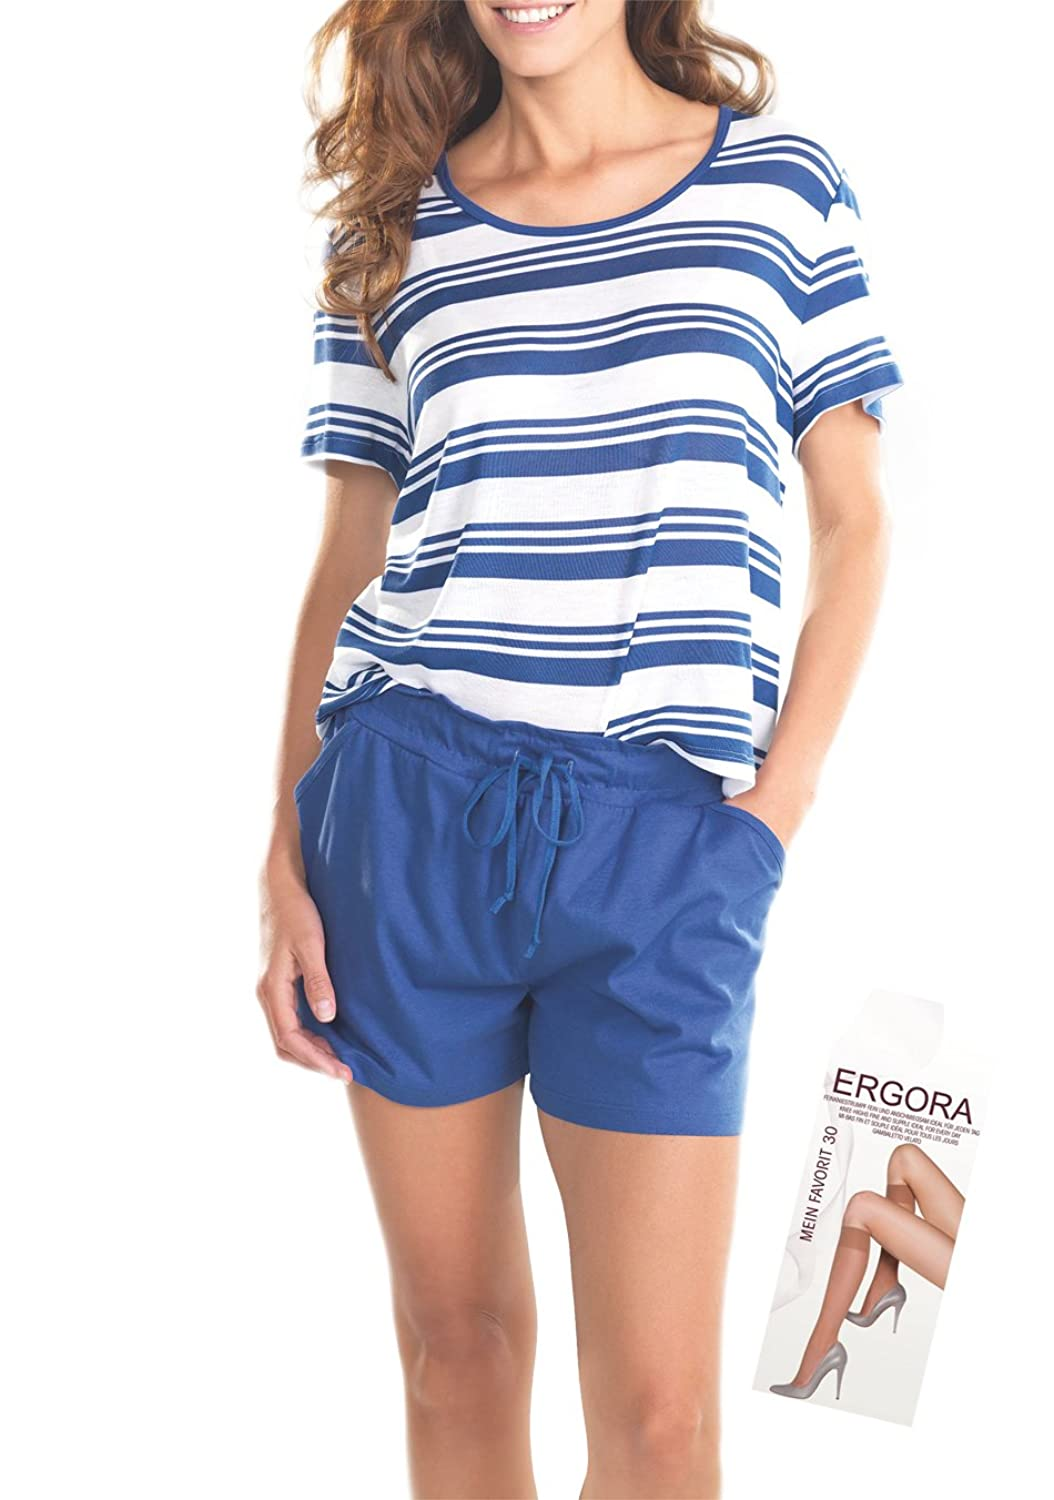 Cybele Damen Sommer Set Shorty + Shirt in Blau-Weiß 7 Gr. 36 bis 48 Homewear Single-Jersey + 1 Paar Feinkniestrümpfe